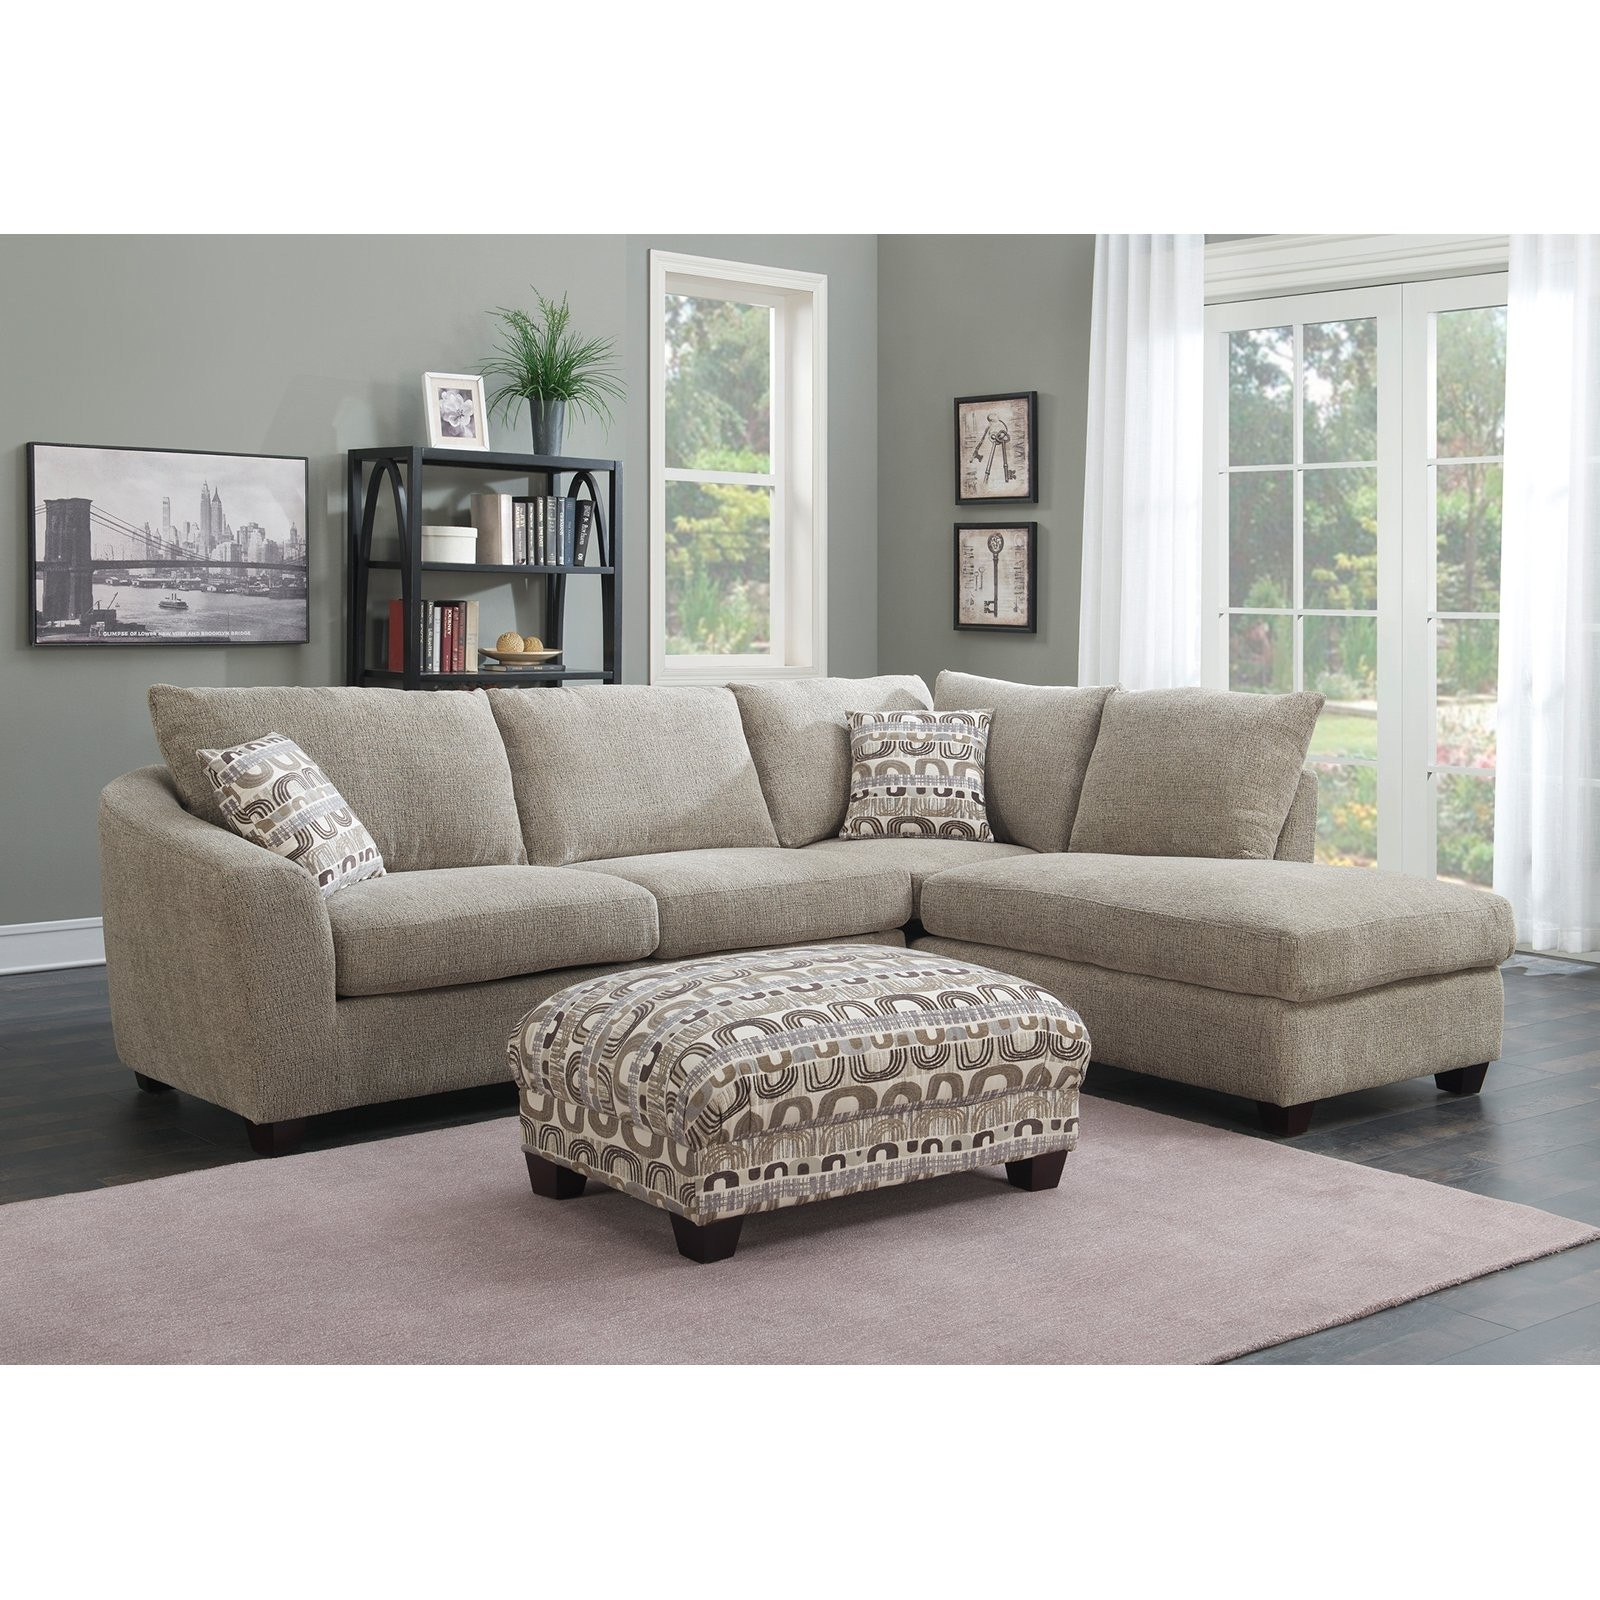 2 Piece Sectional With Chaise Delano W Laf Oversized Living Spaces intended for Delano 2 Piece Sectionals With Laf Oversized Chaise